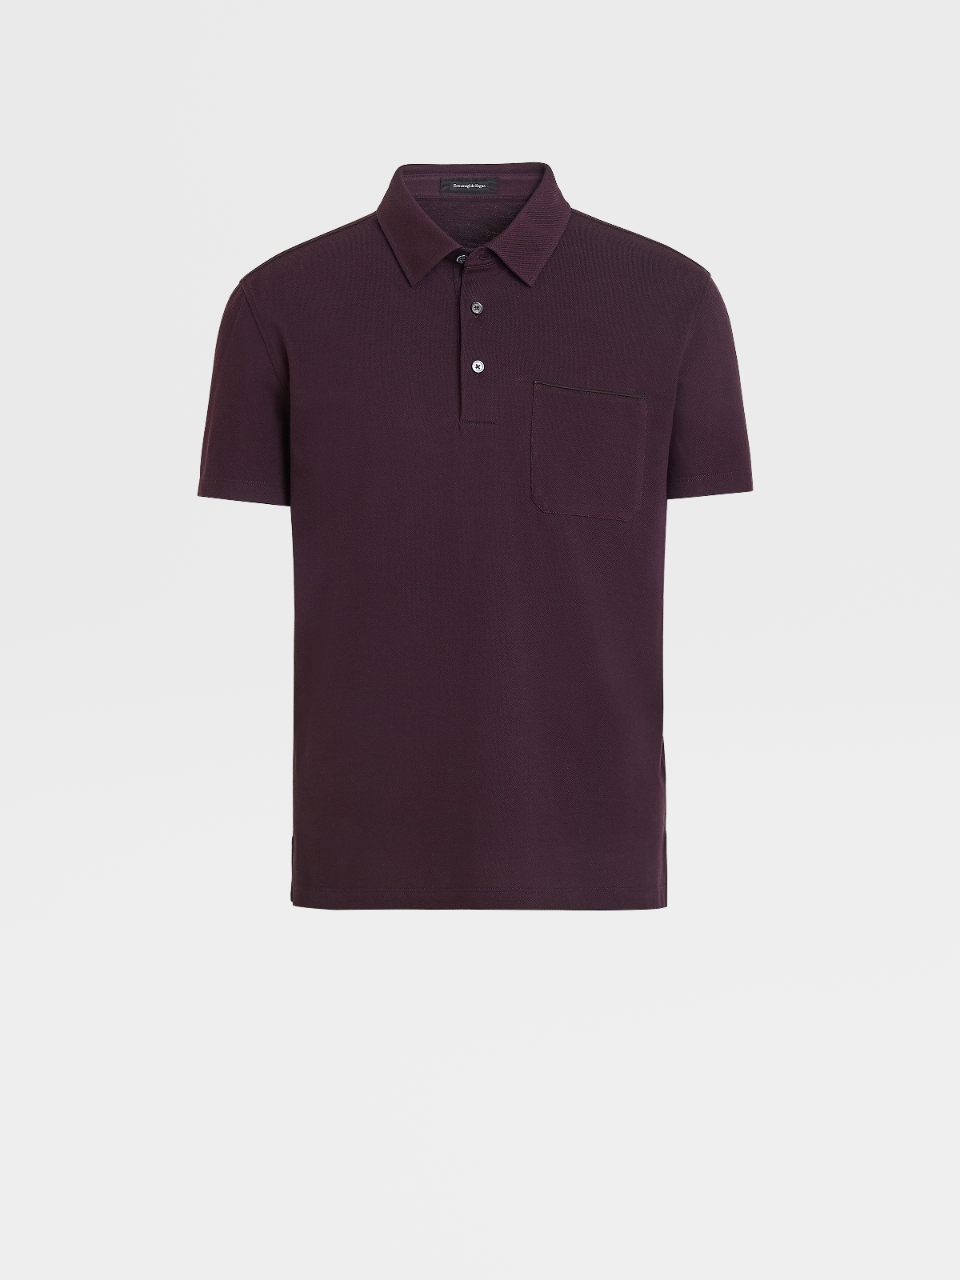 Weimar Purple